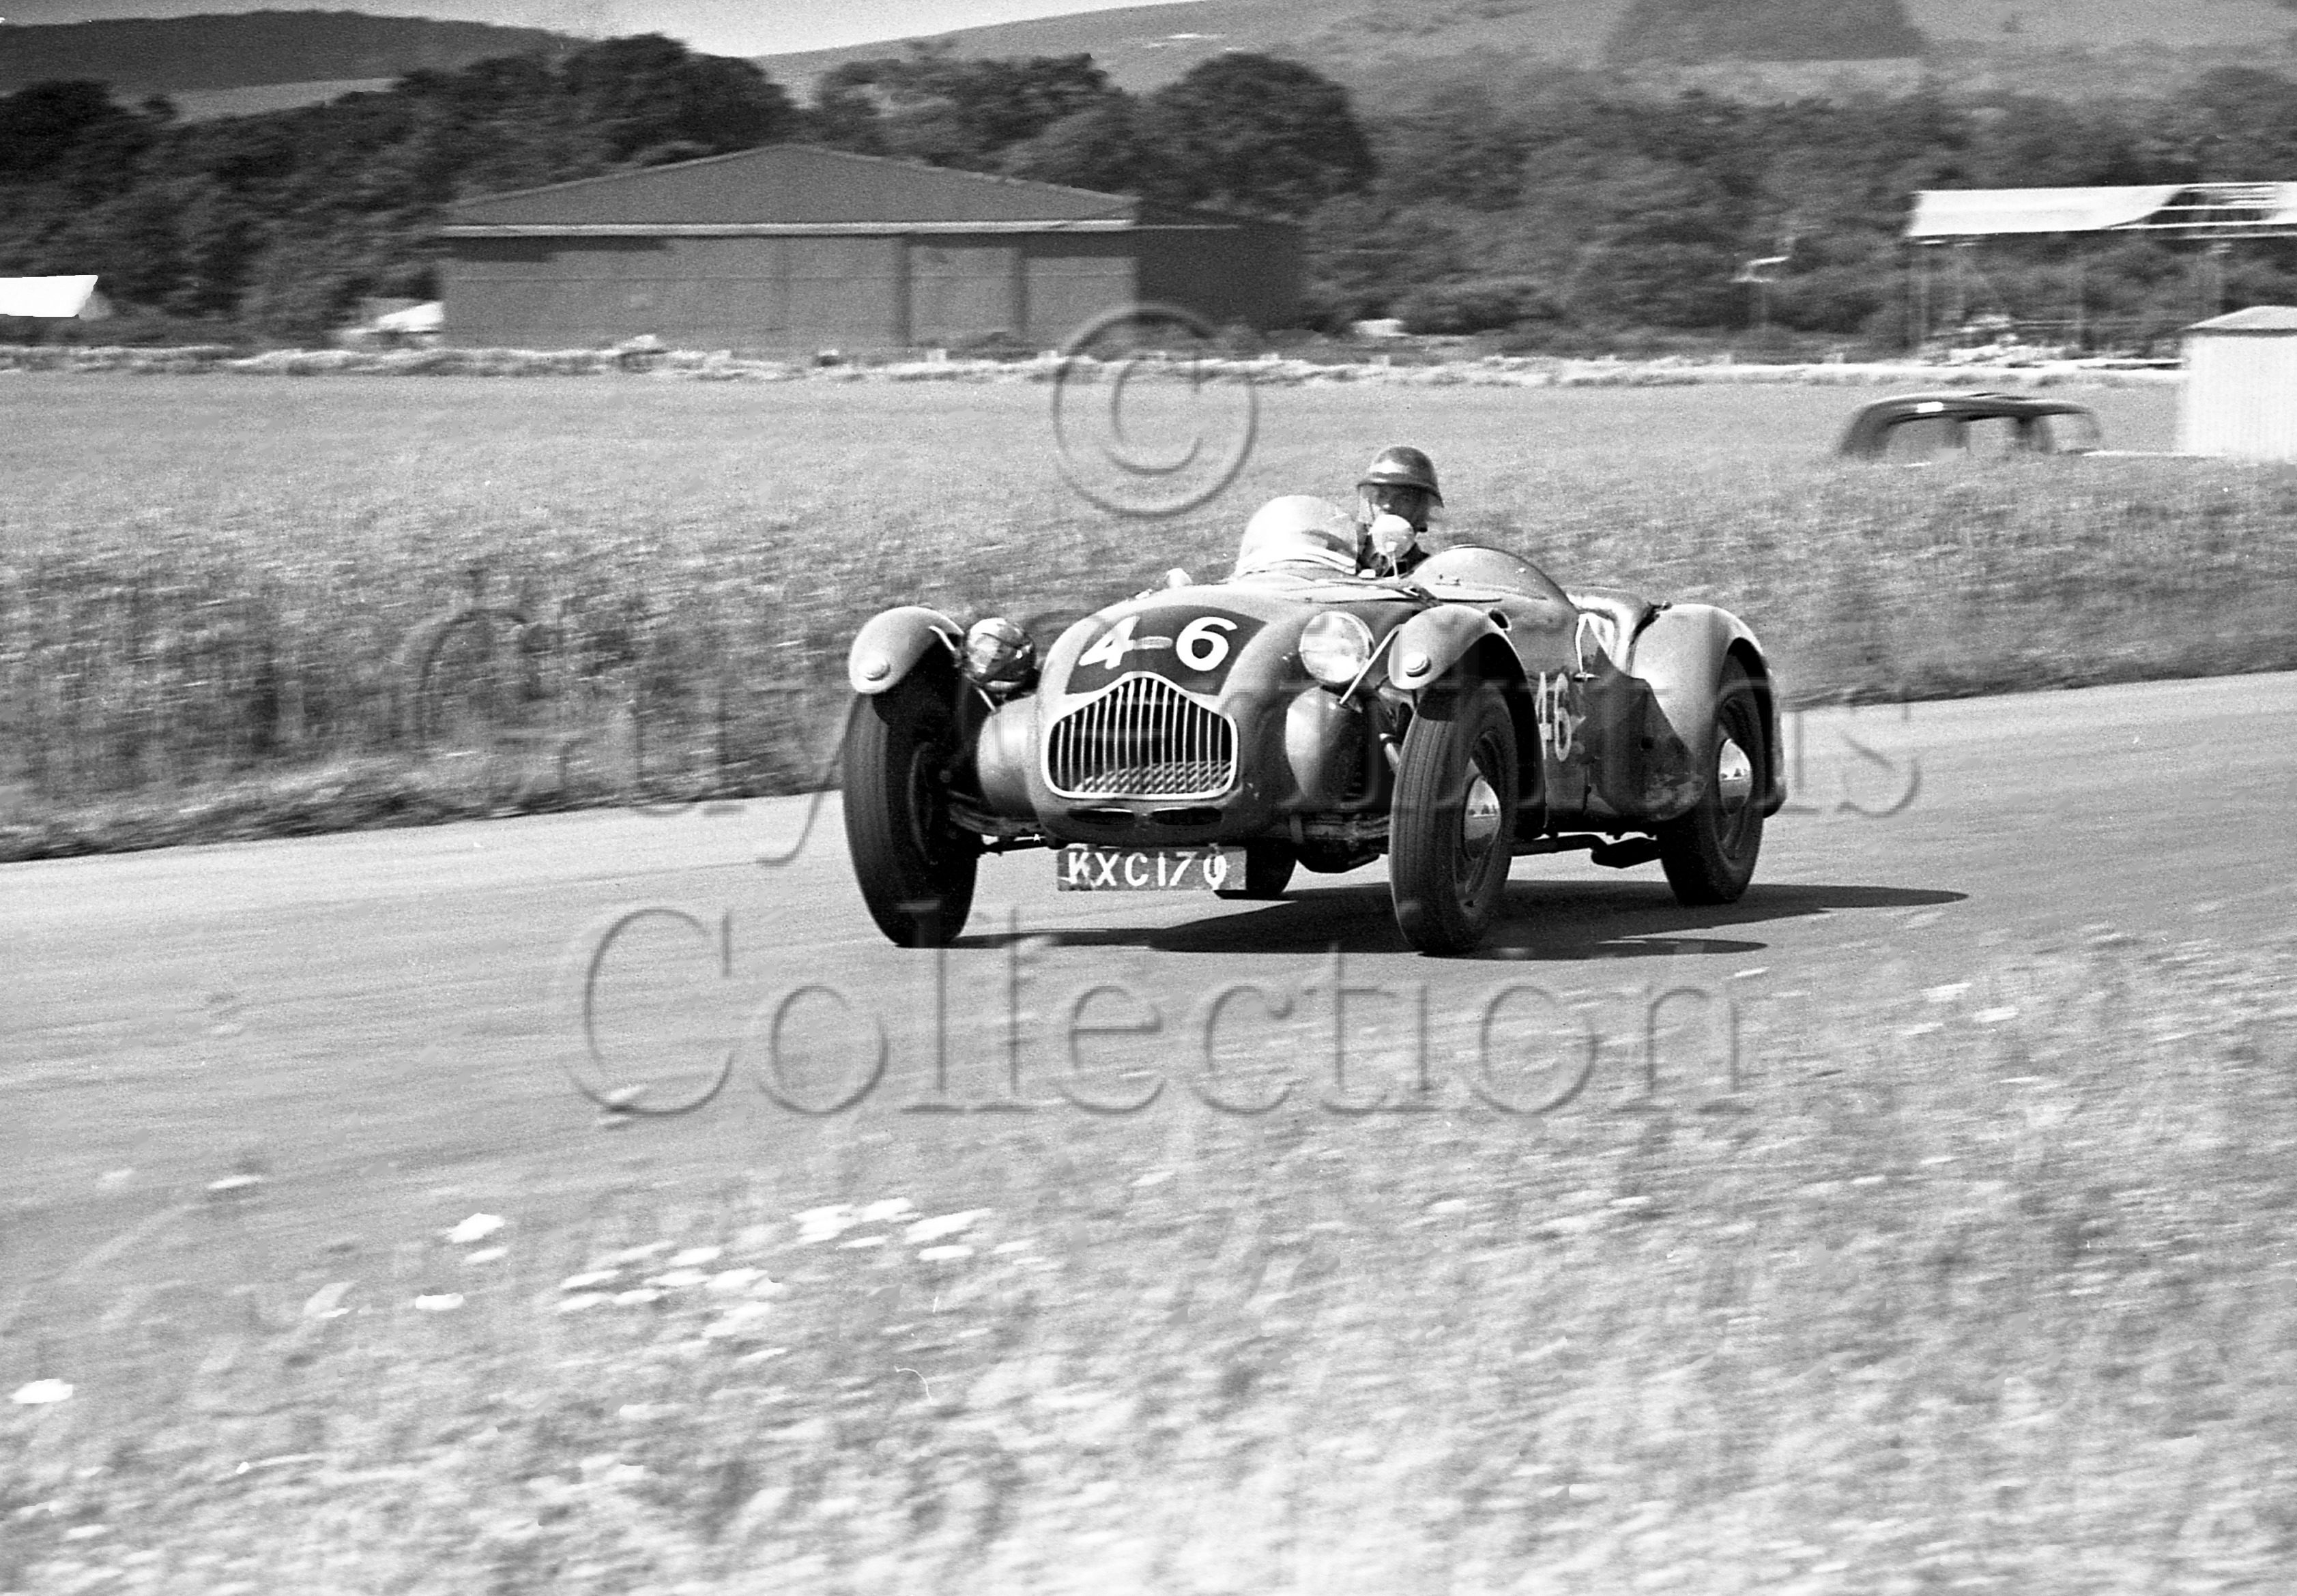 46-225–D-F-Annable–Allard–Goodwood–16-06-1951.jpg - The Guy Griffiths Collection